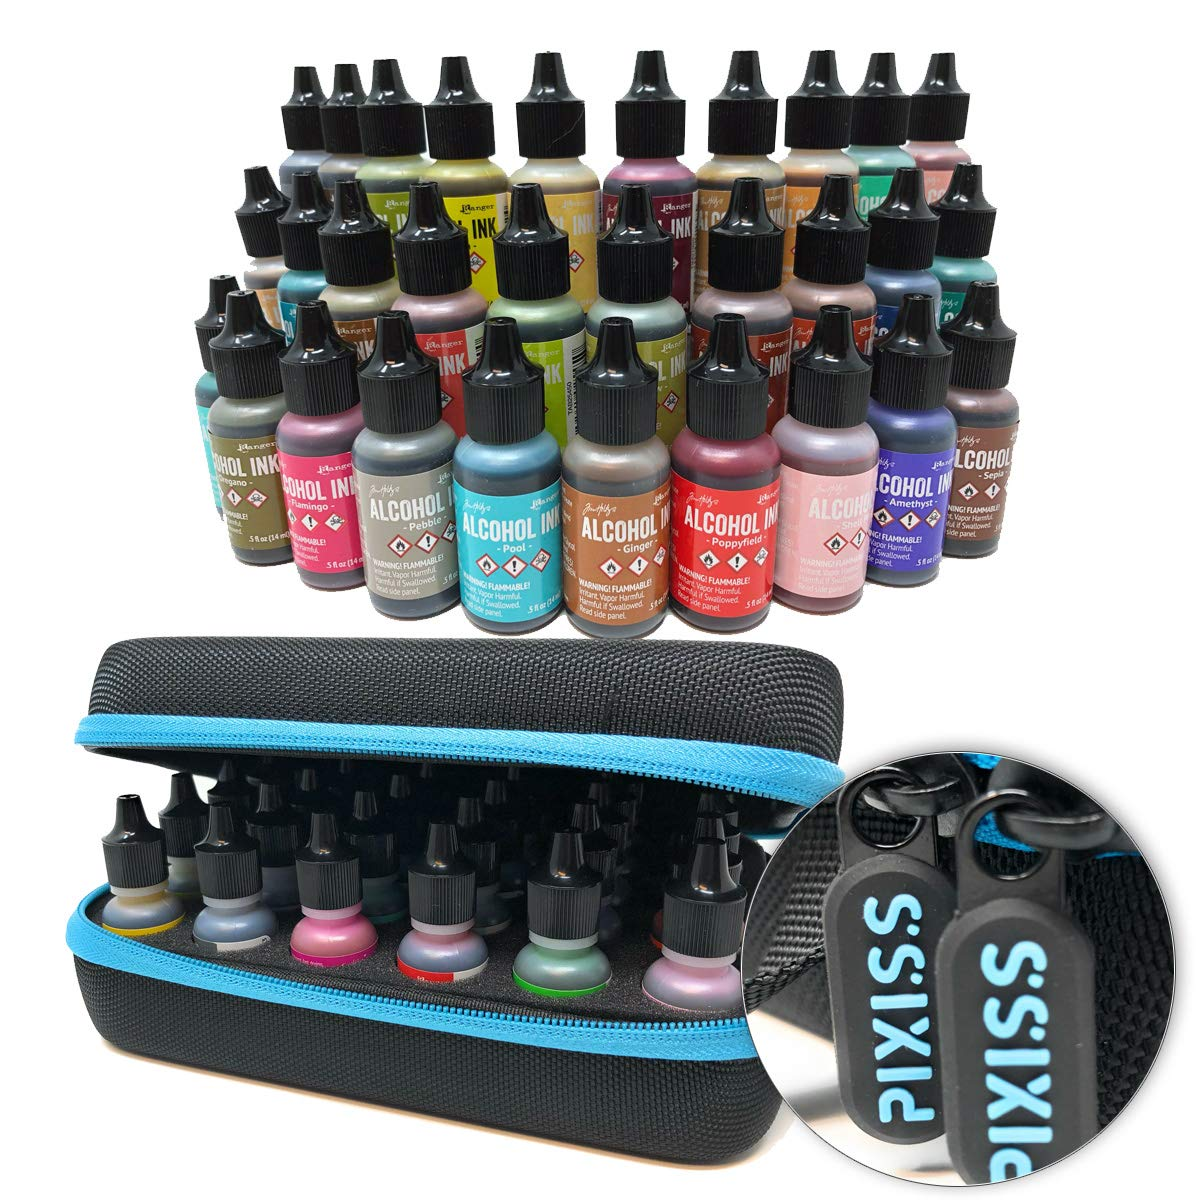 30x Tim Holtz Alcohol Ink .5oz Bottles (Assorted Colors), Pixiss Alcohol Ink Storage Carrying Case Organizer, Stores 30x 0.5-Ounce Bottles of Alcohol Ink, Stickles, Glossy Accents or Reinkers, Travel